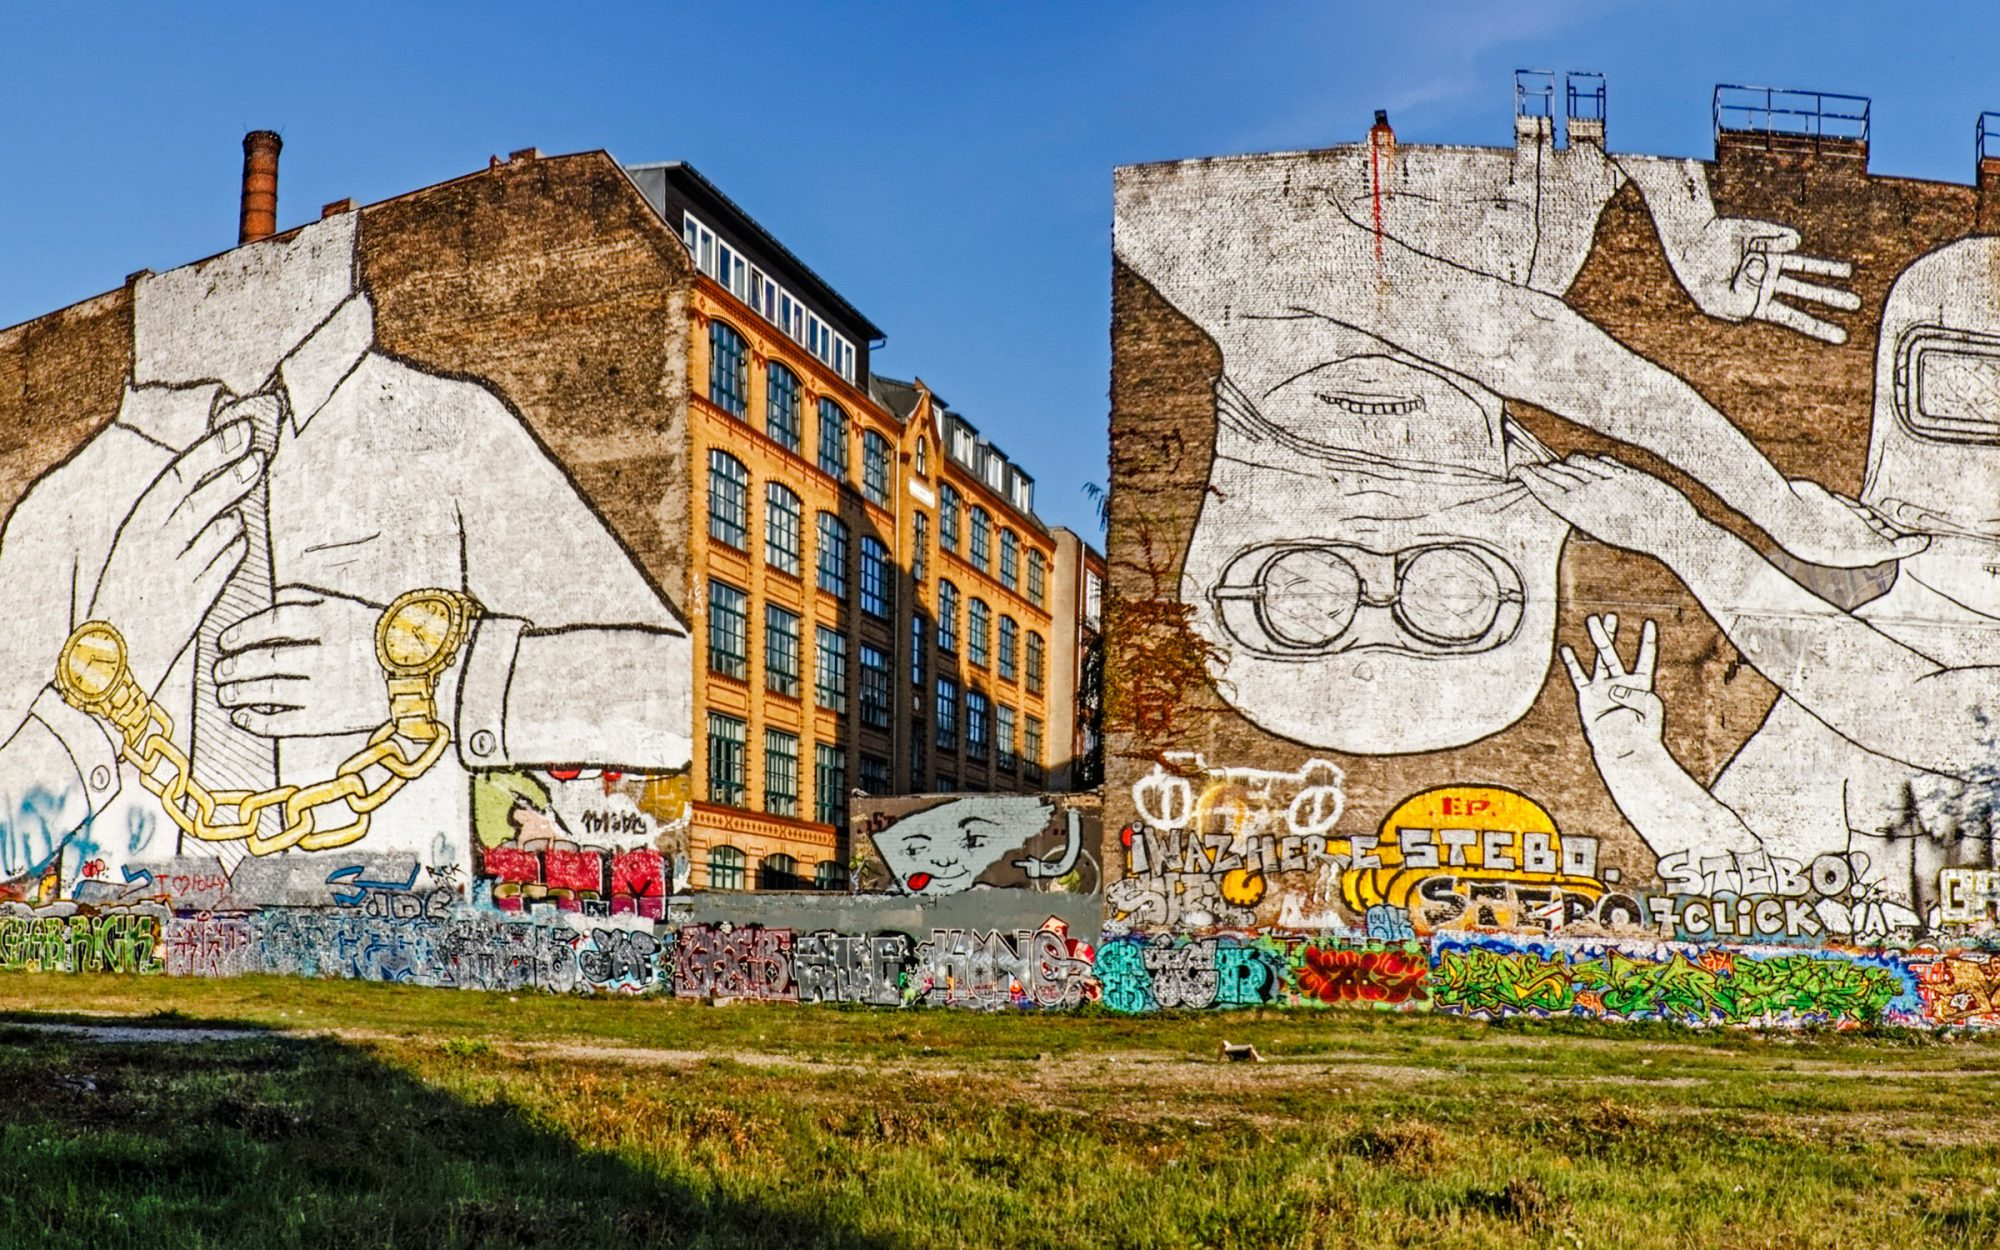 Mural, Kreuzberg, Berlin, Germany